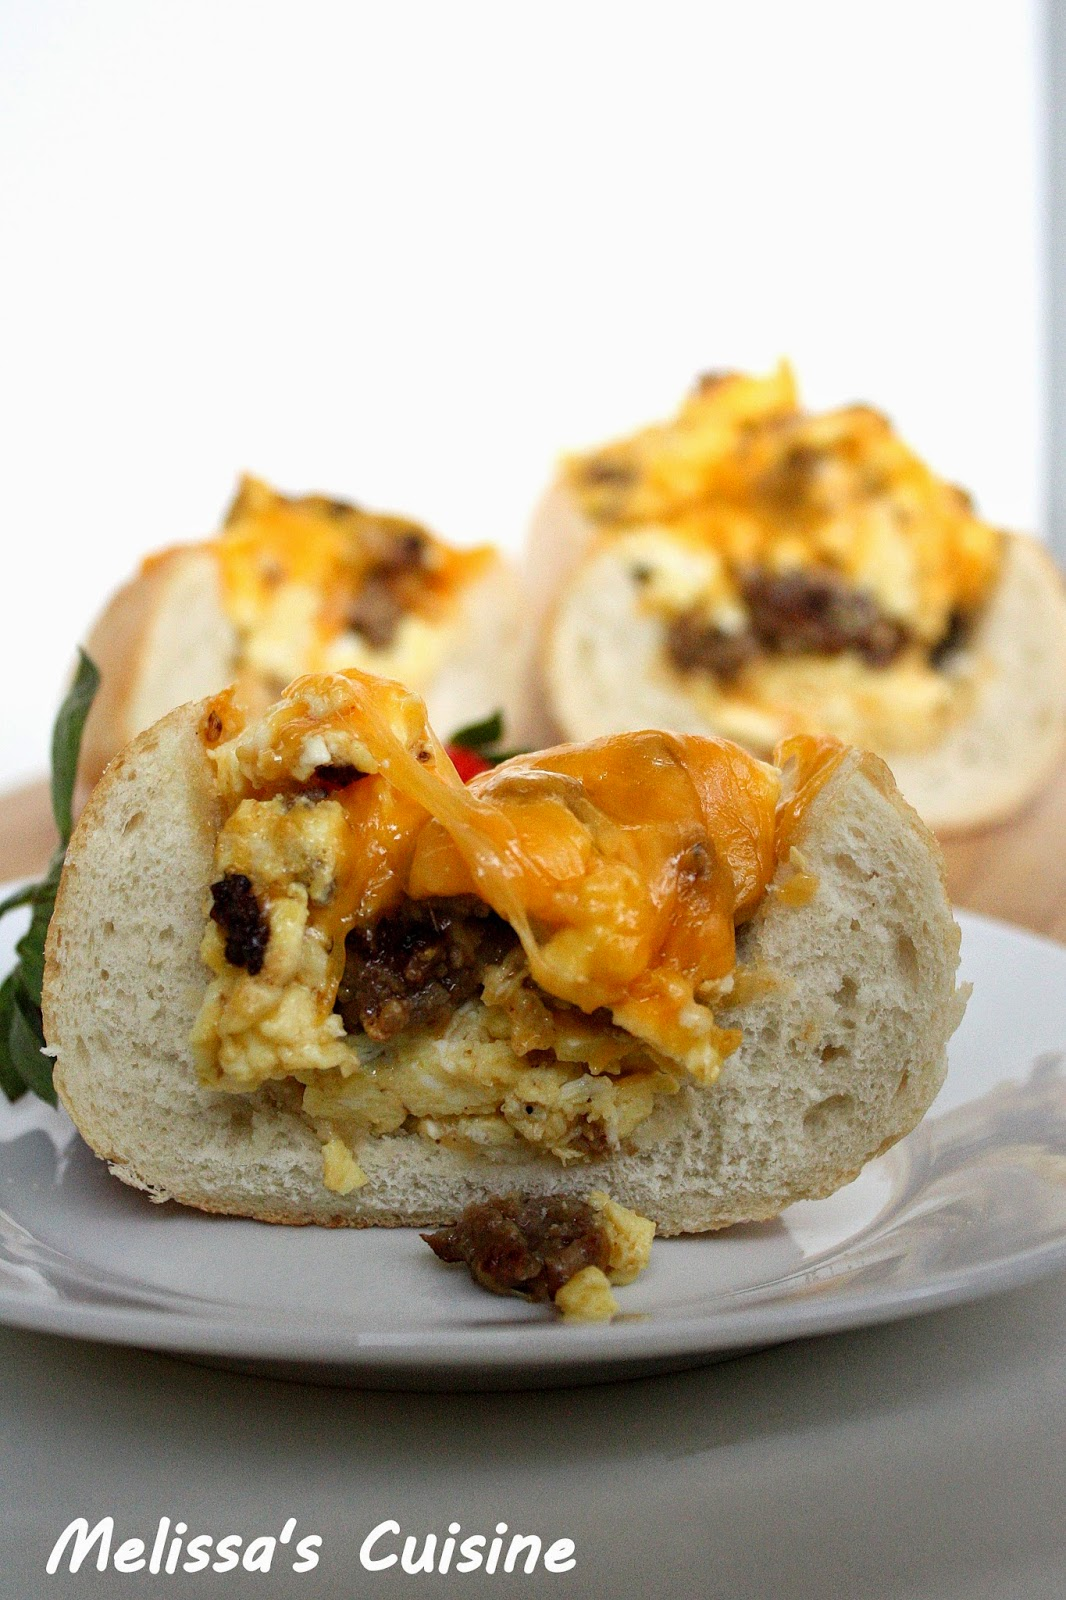 Melissa's Cuisine:  Sausage and Egg Breakfast Boat